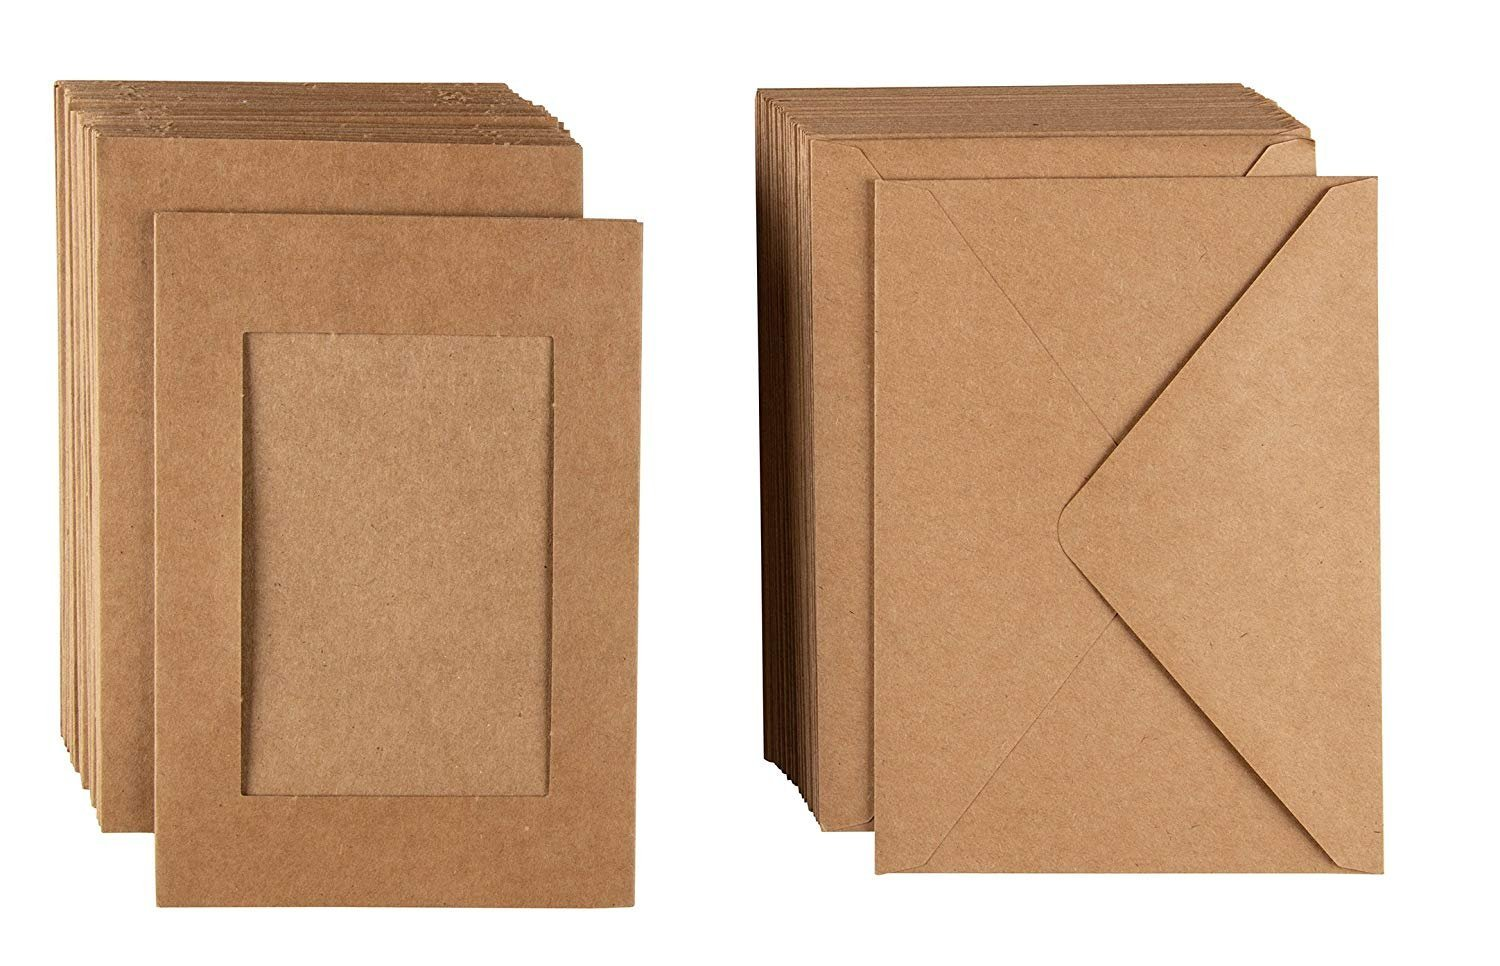 36-Pack Kraft Photo Insert Note Cards - Includes Paper Picture Frames and Envelopes - Kraft Paper Photo Mats, Photo Insert Greeting Cards, Holds 5 x 7 Inches Inserts